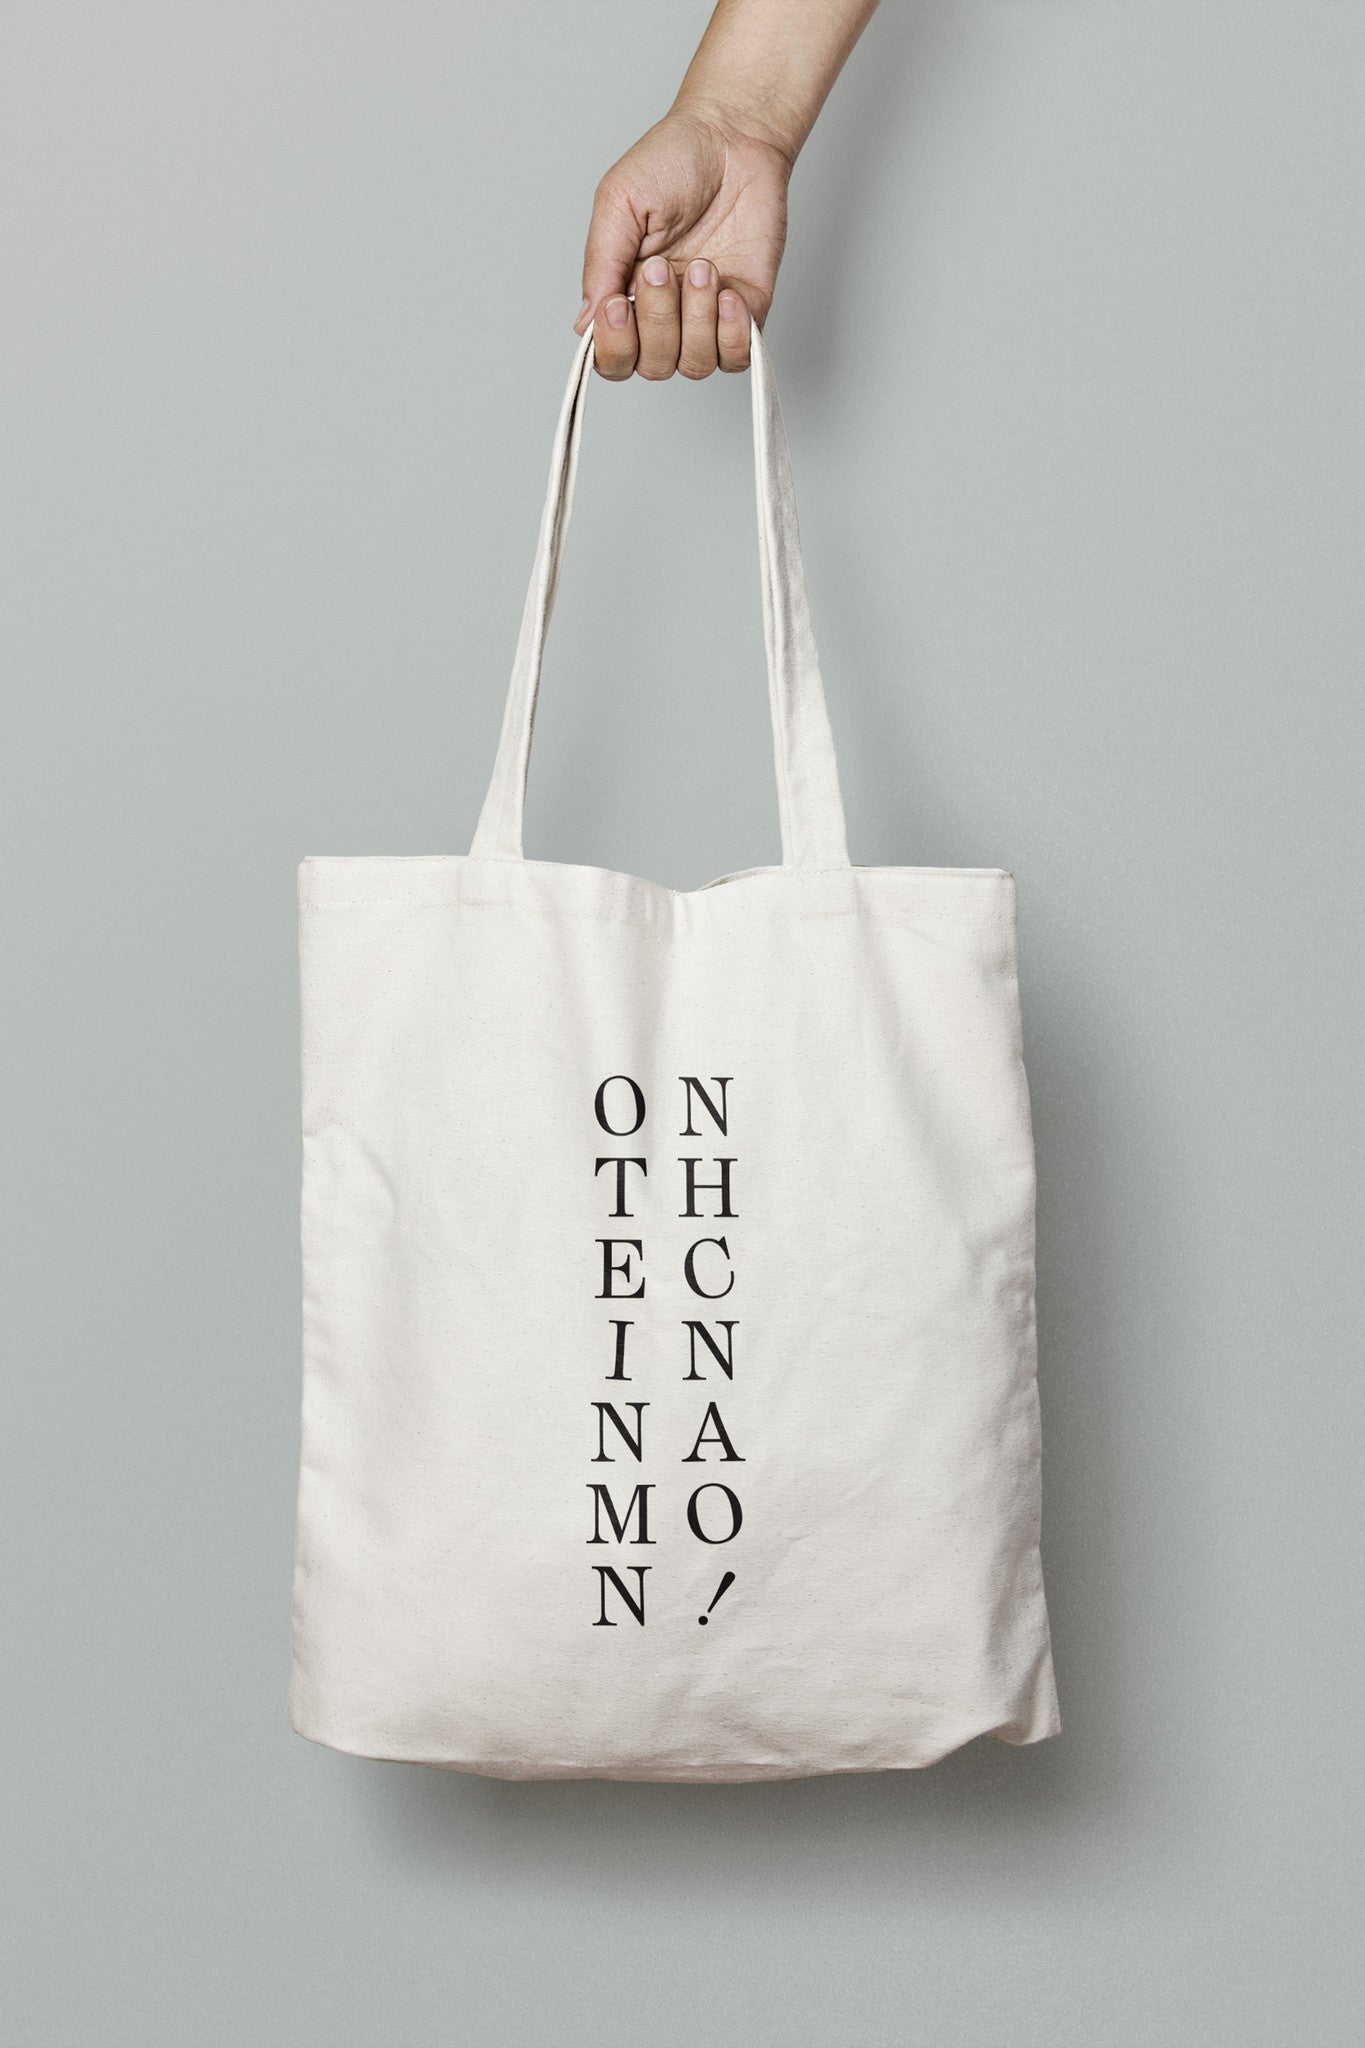 On the Cinnamon! Tote by emerybloom